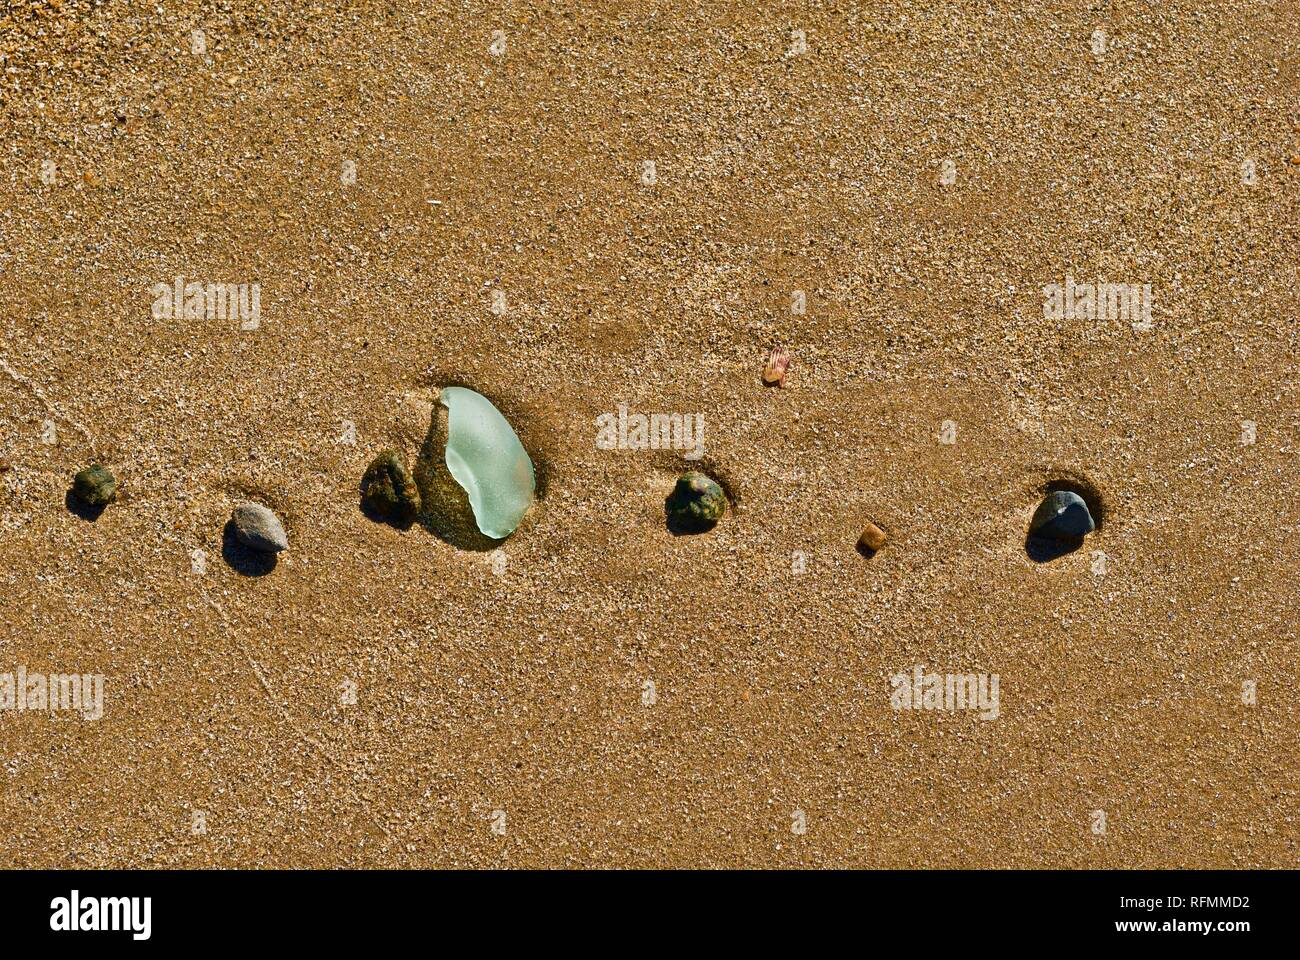 Sea glass waste and pollution washed up on a beach in Rhosneigr, Anglesey, North Wales, UK - Stock Image